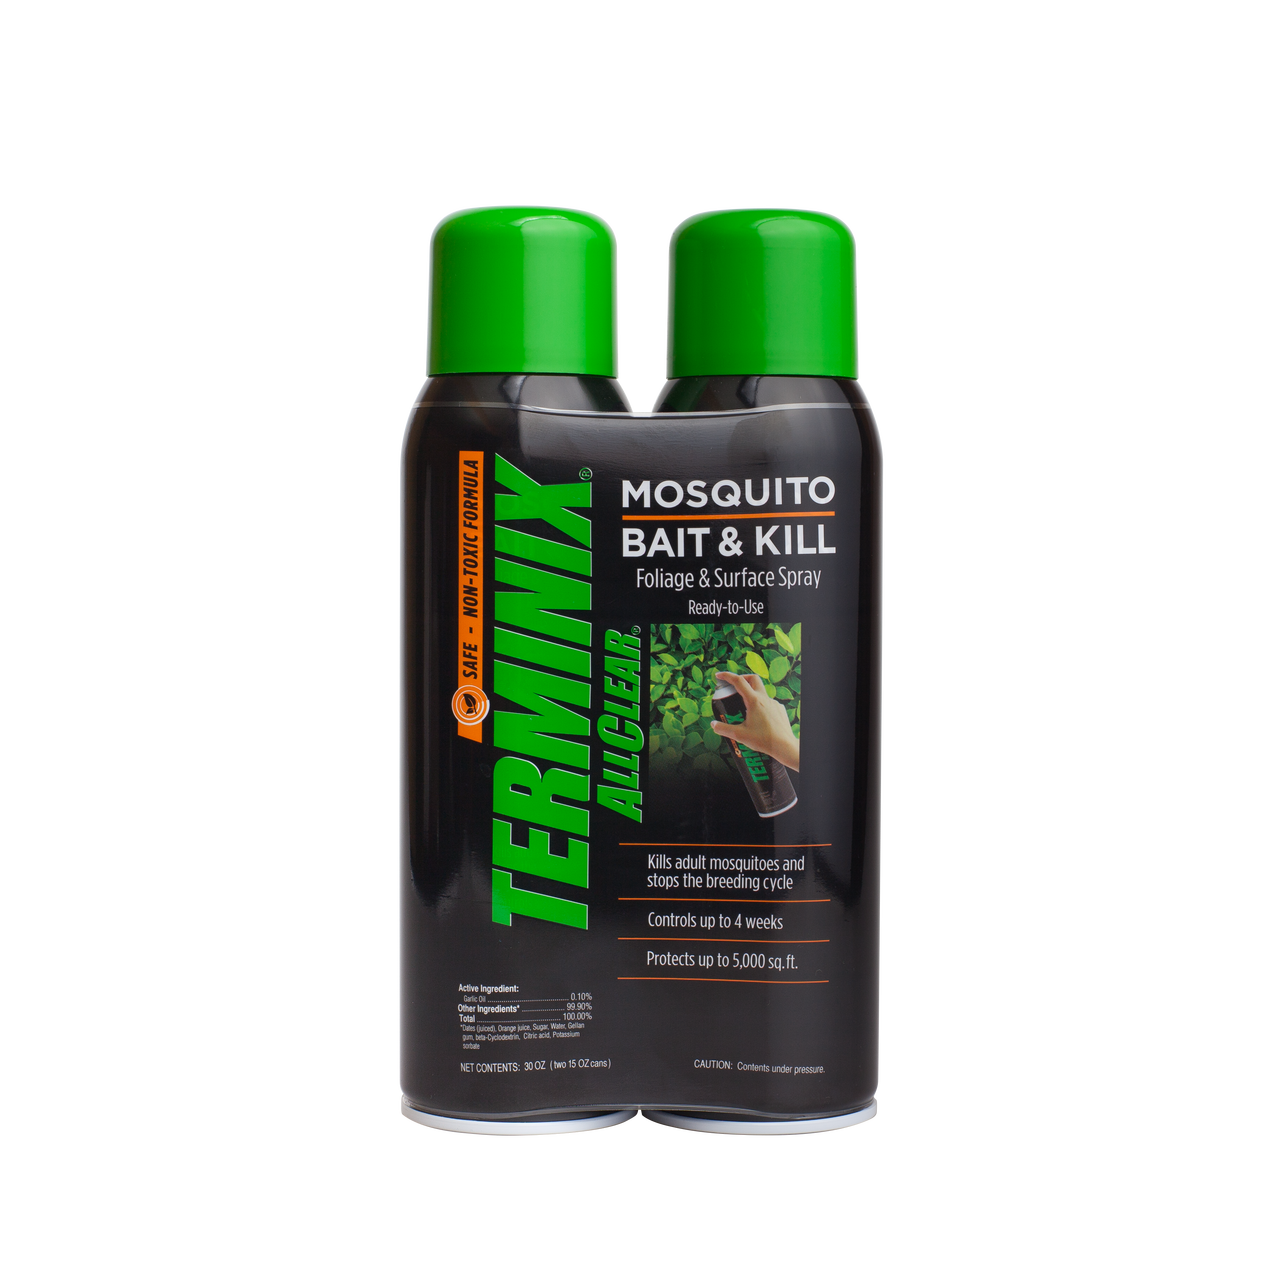 bait kill u0026 collapse backyard mosquito populations by more than